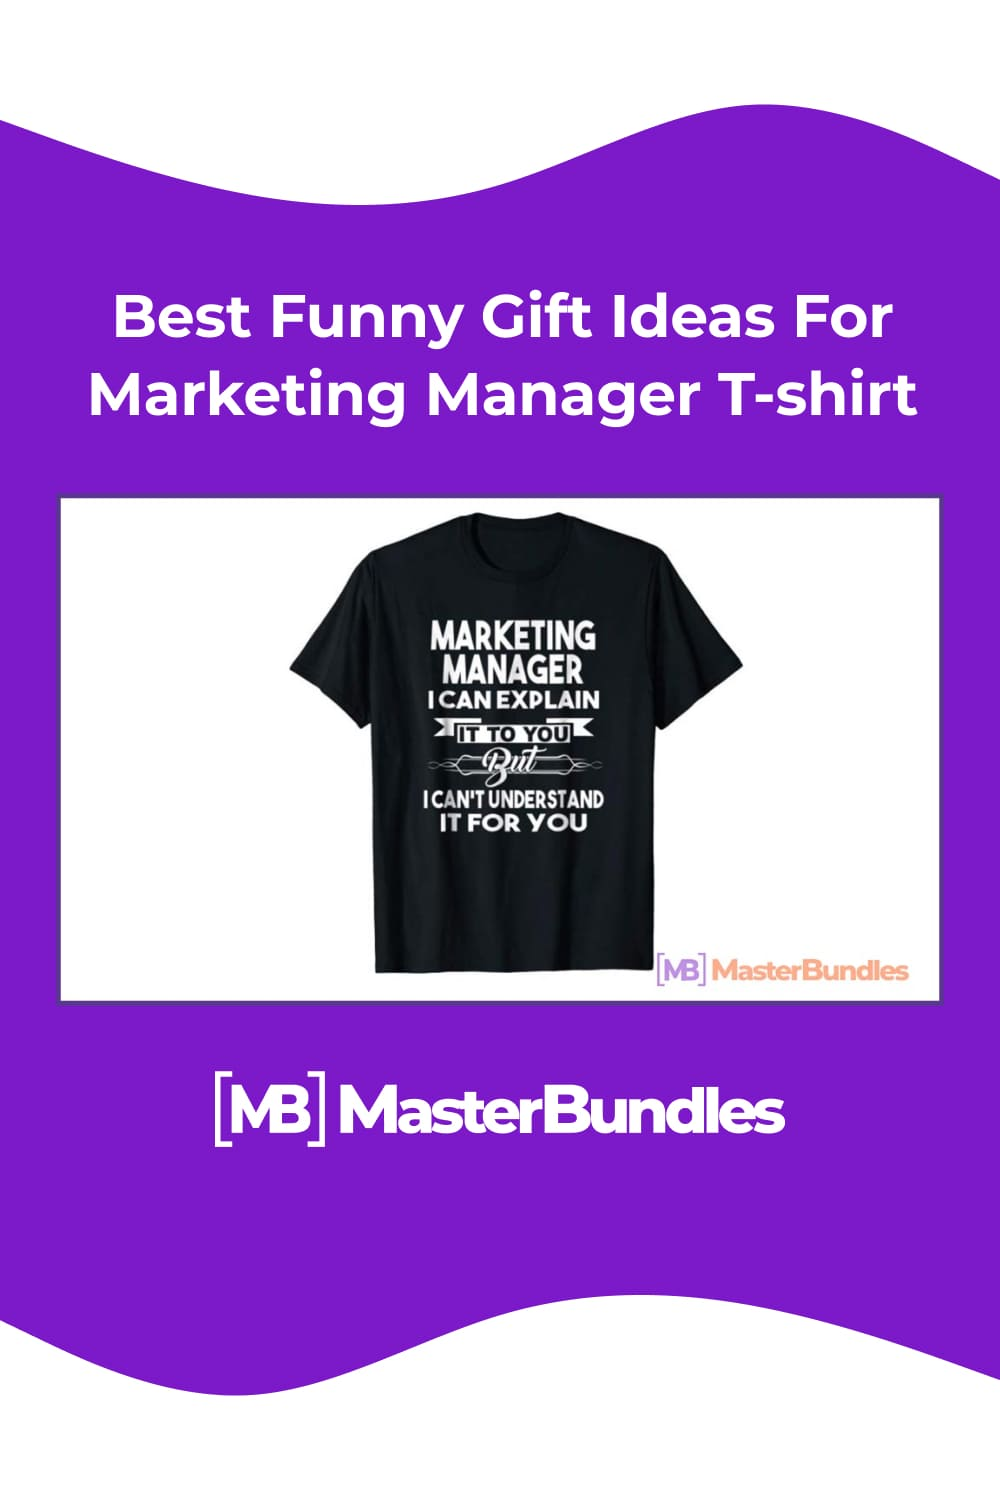 Best funny gift ideas for marketing manager t-shirt.